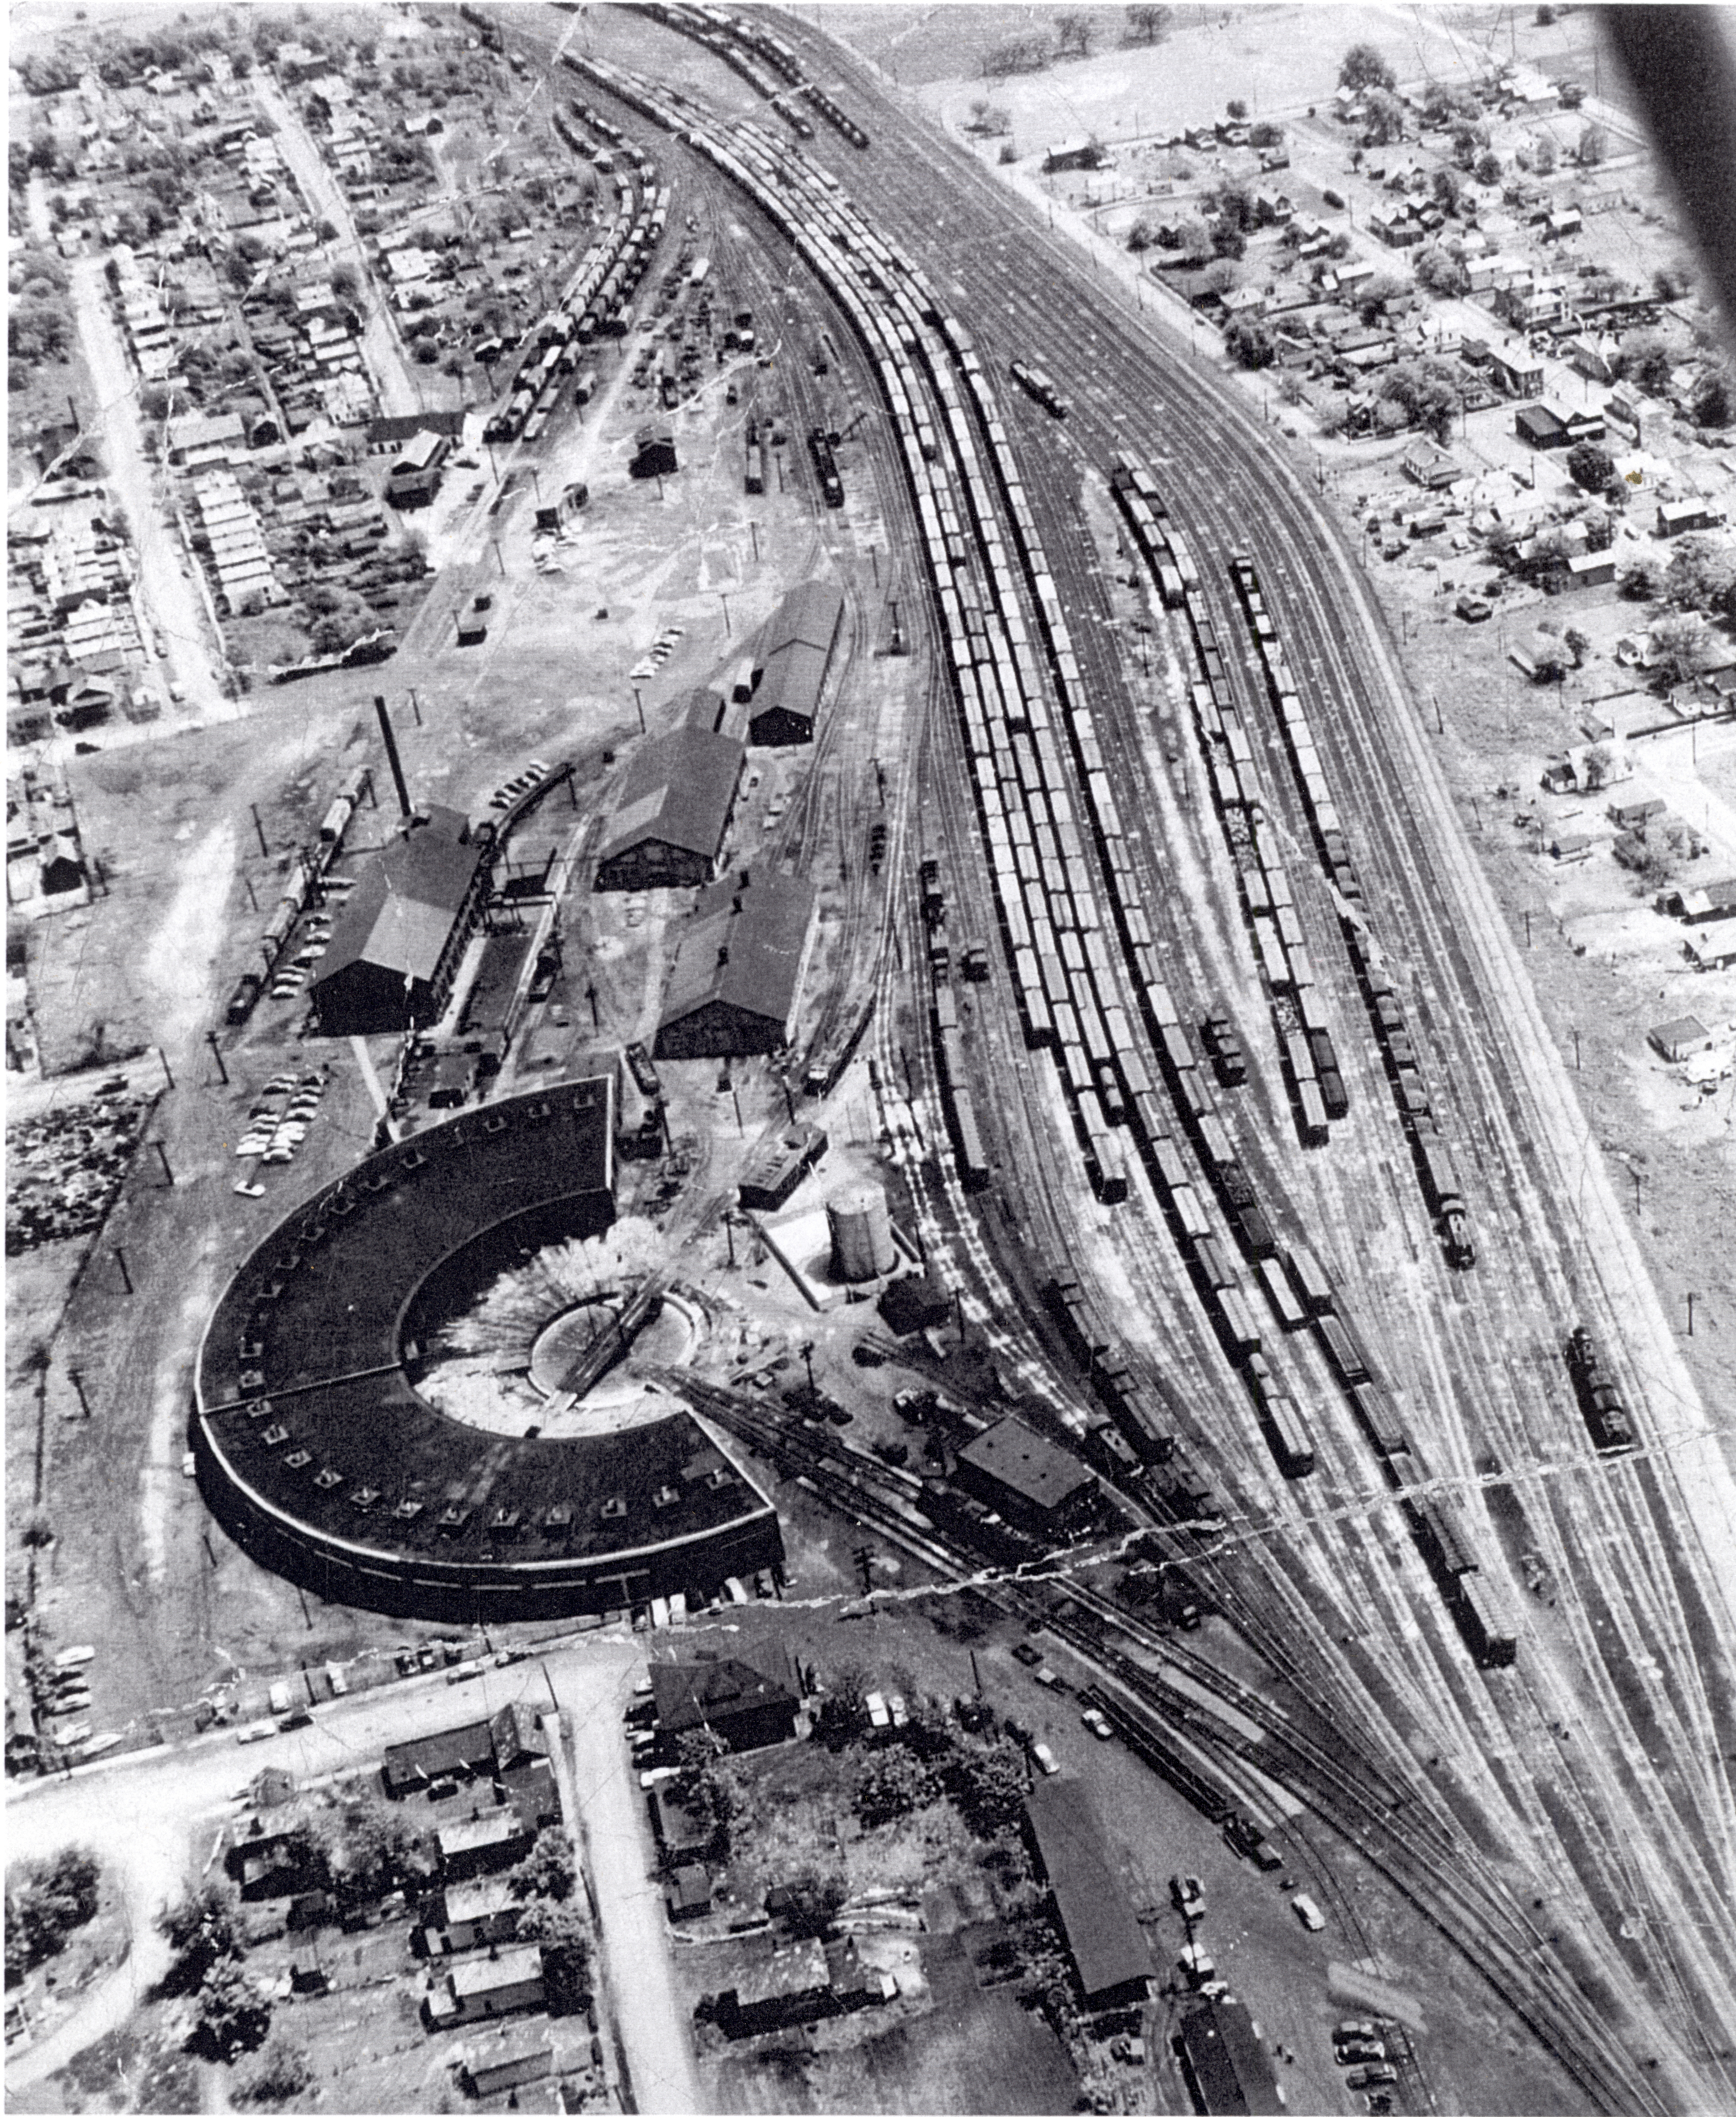 An aerial view of the B&O roundhouse and rail yard.